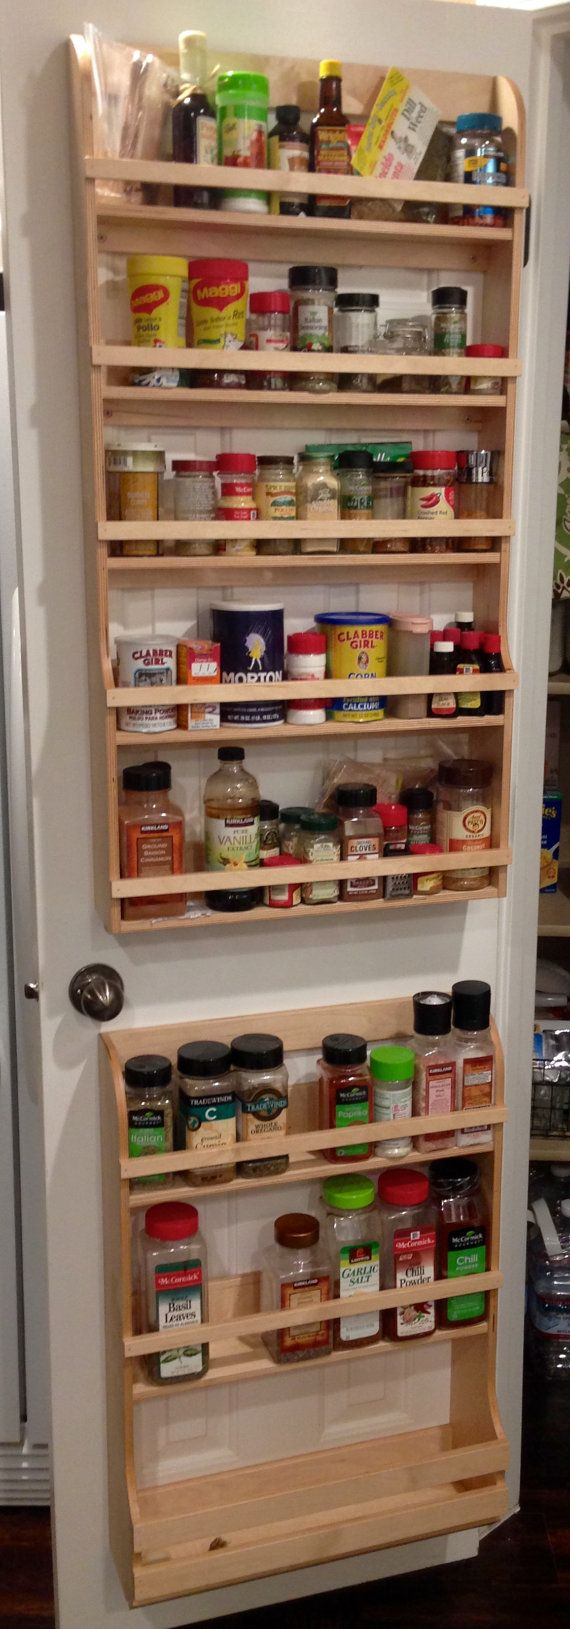 Food Storage For Small Kitchen 17 Best Ideas About Small Kitchen Spice Racks On Pinterest